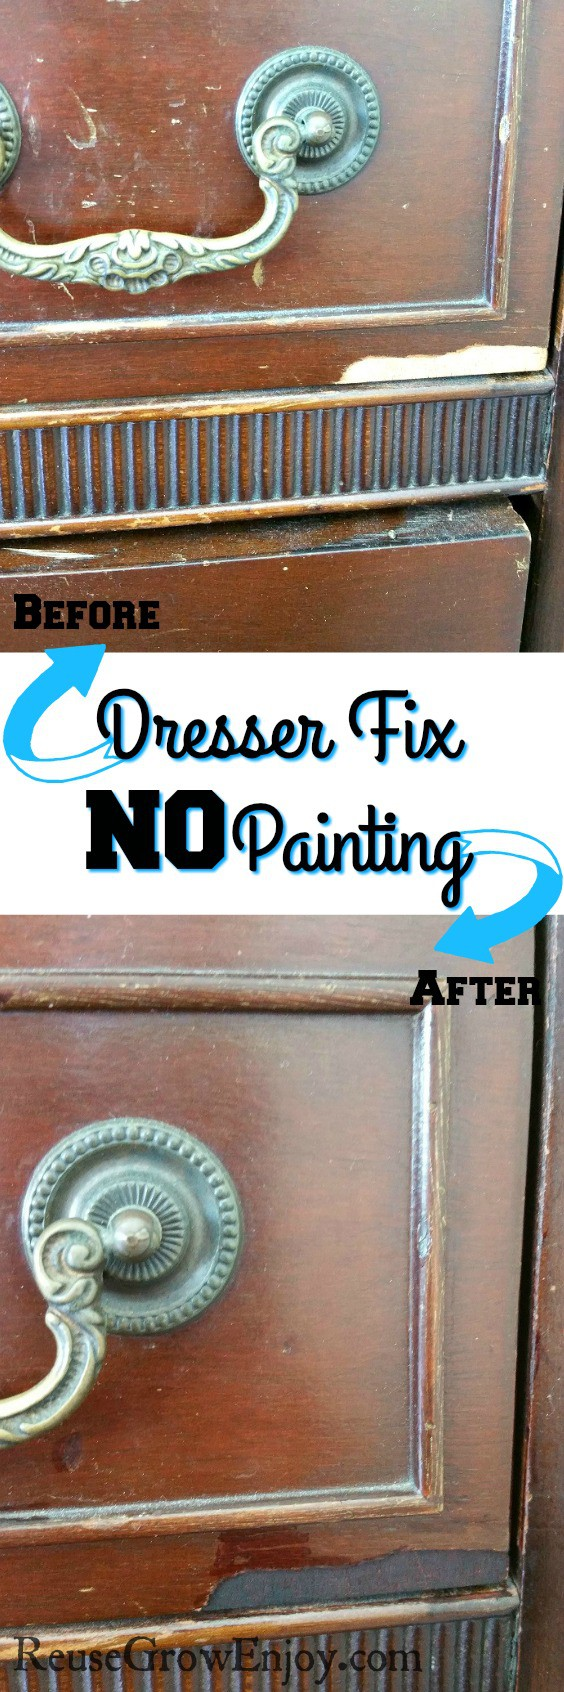 If you have scuffs on your dresser but do not want to paint it, check out this fix. It is a Dresser Fix - Cover Scratches Without Painting!